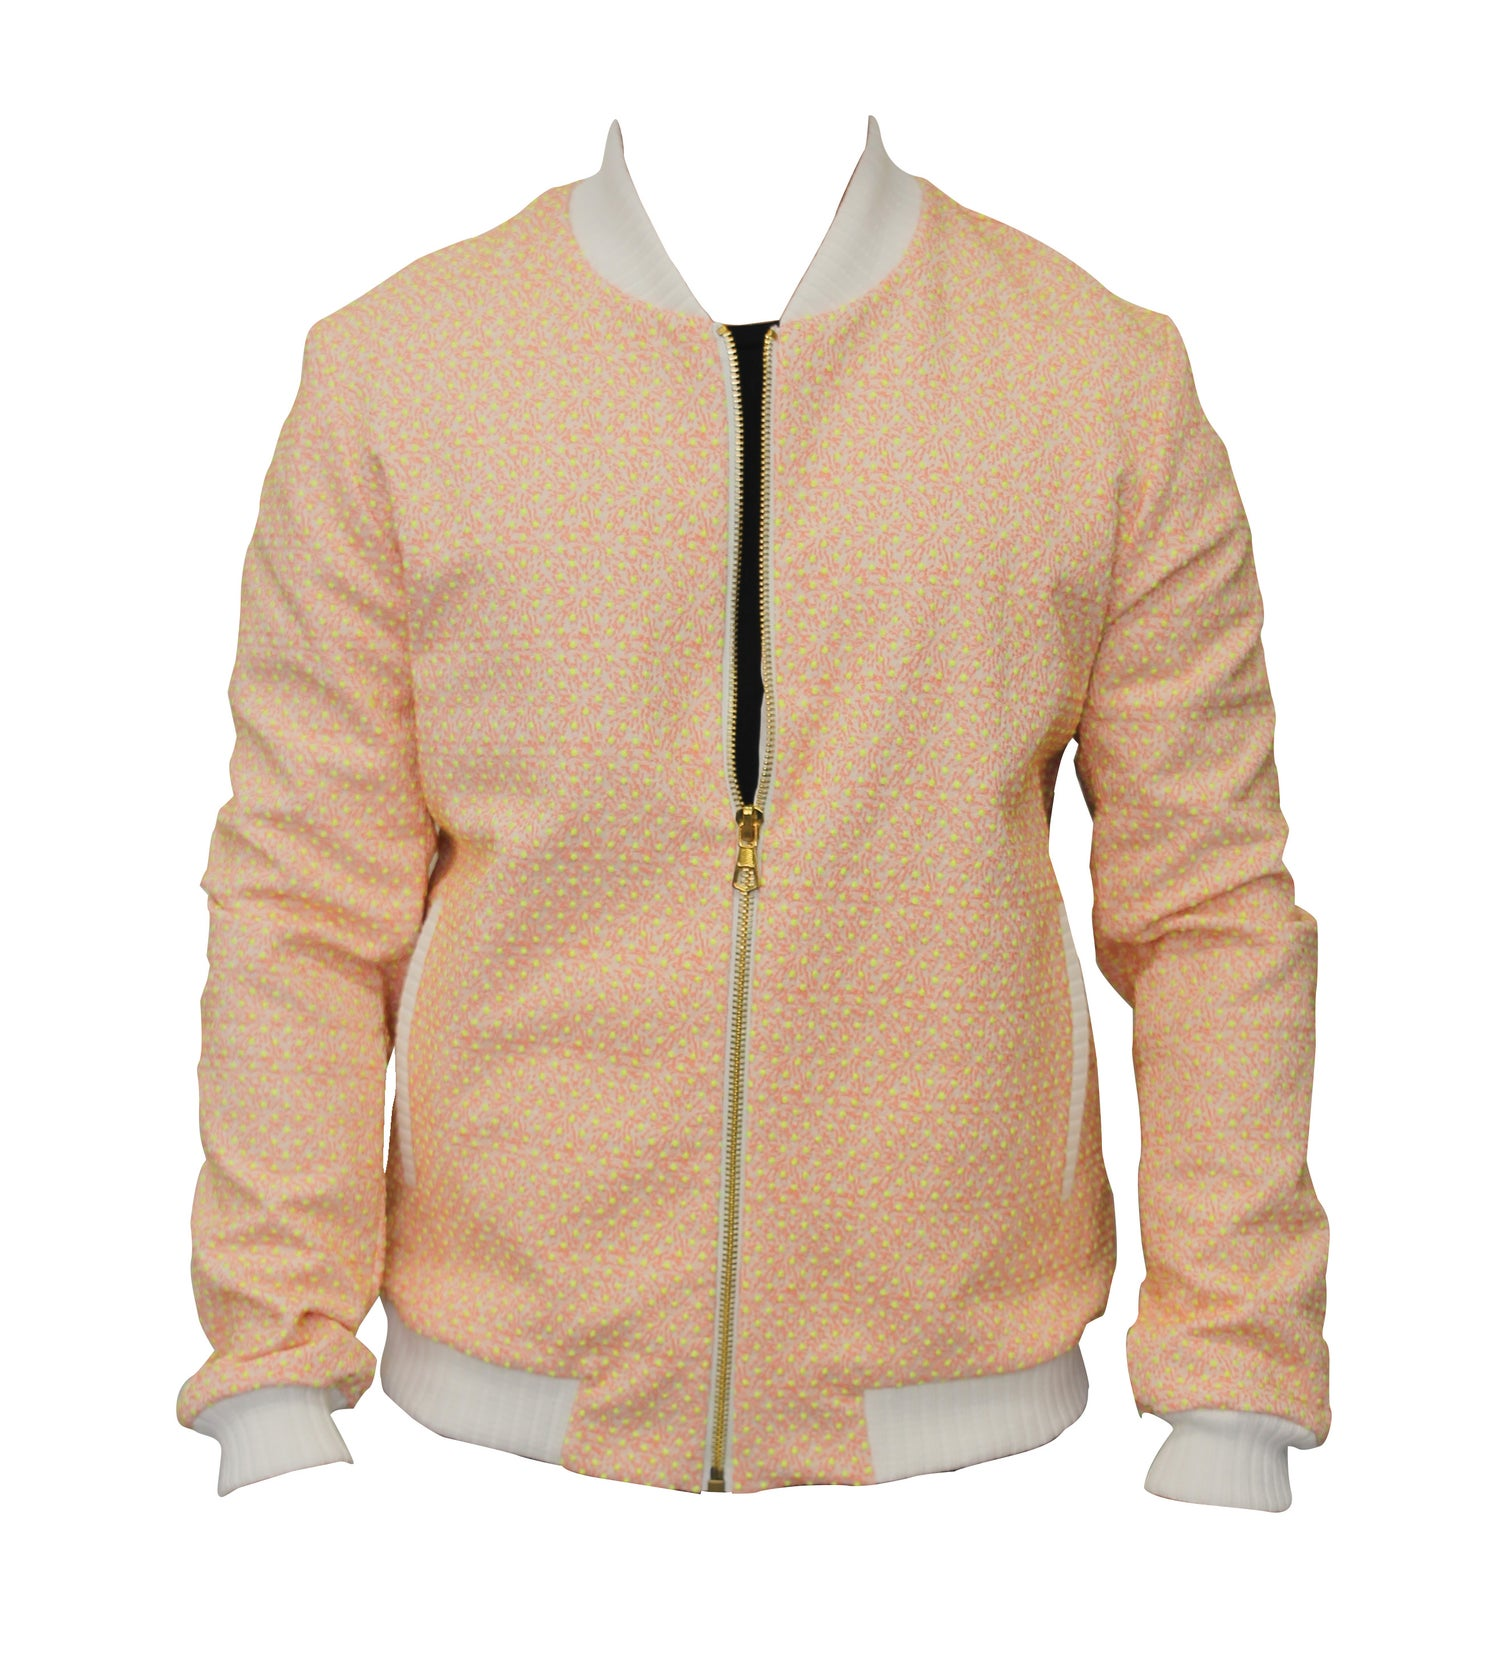 Image of Texture Jacquard Bomber